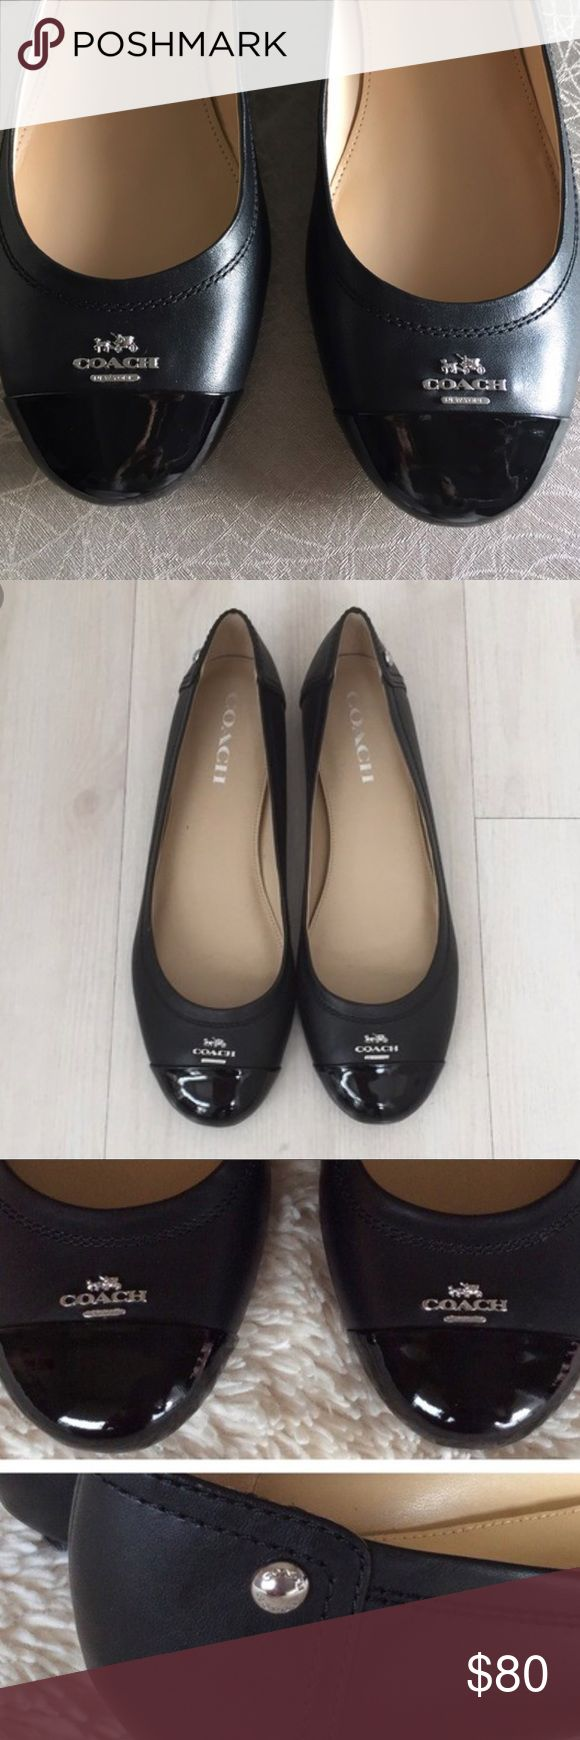 Coach Flats New authentic coach flats  Genuine leather flats  Product Details BRAND: COACH COLOR: BLACK/BLACK MATERIAL: LEATHER HEEL: 0.50 INCHES (1.27 CM) TOE SHAPE: ROUND TOE Coach Shoes Flats & Loafers